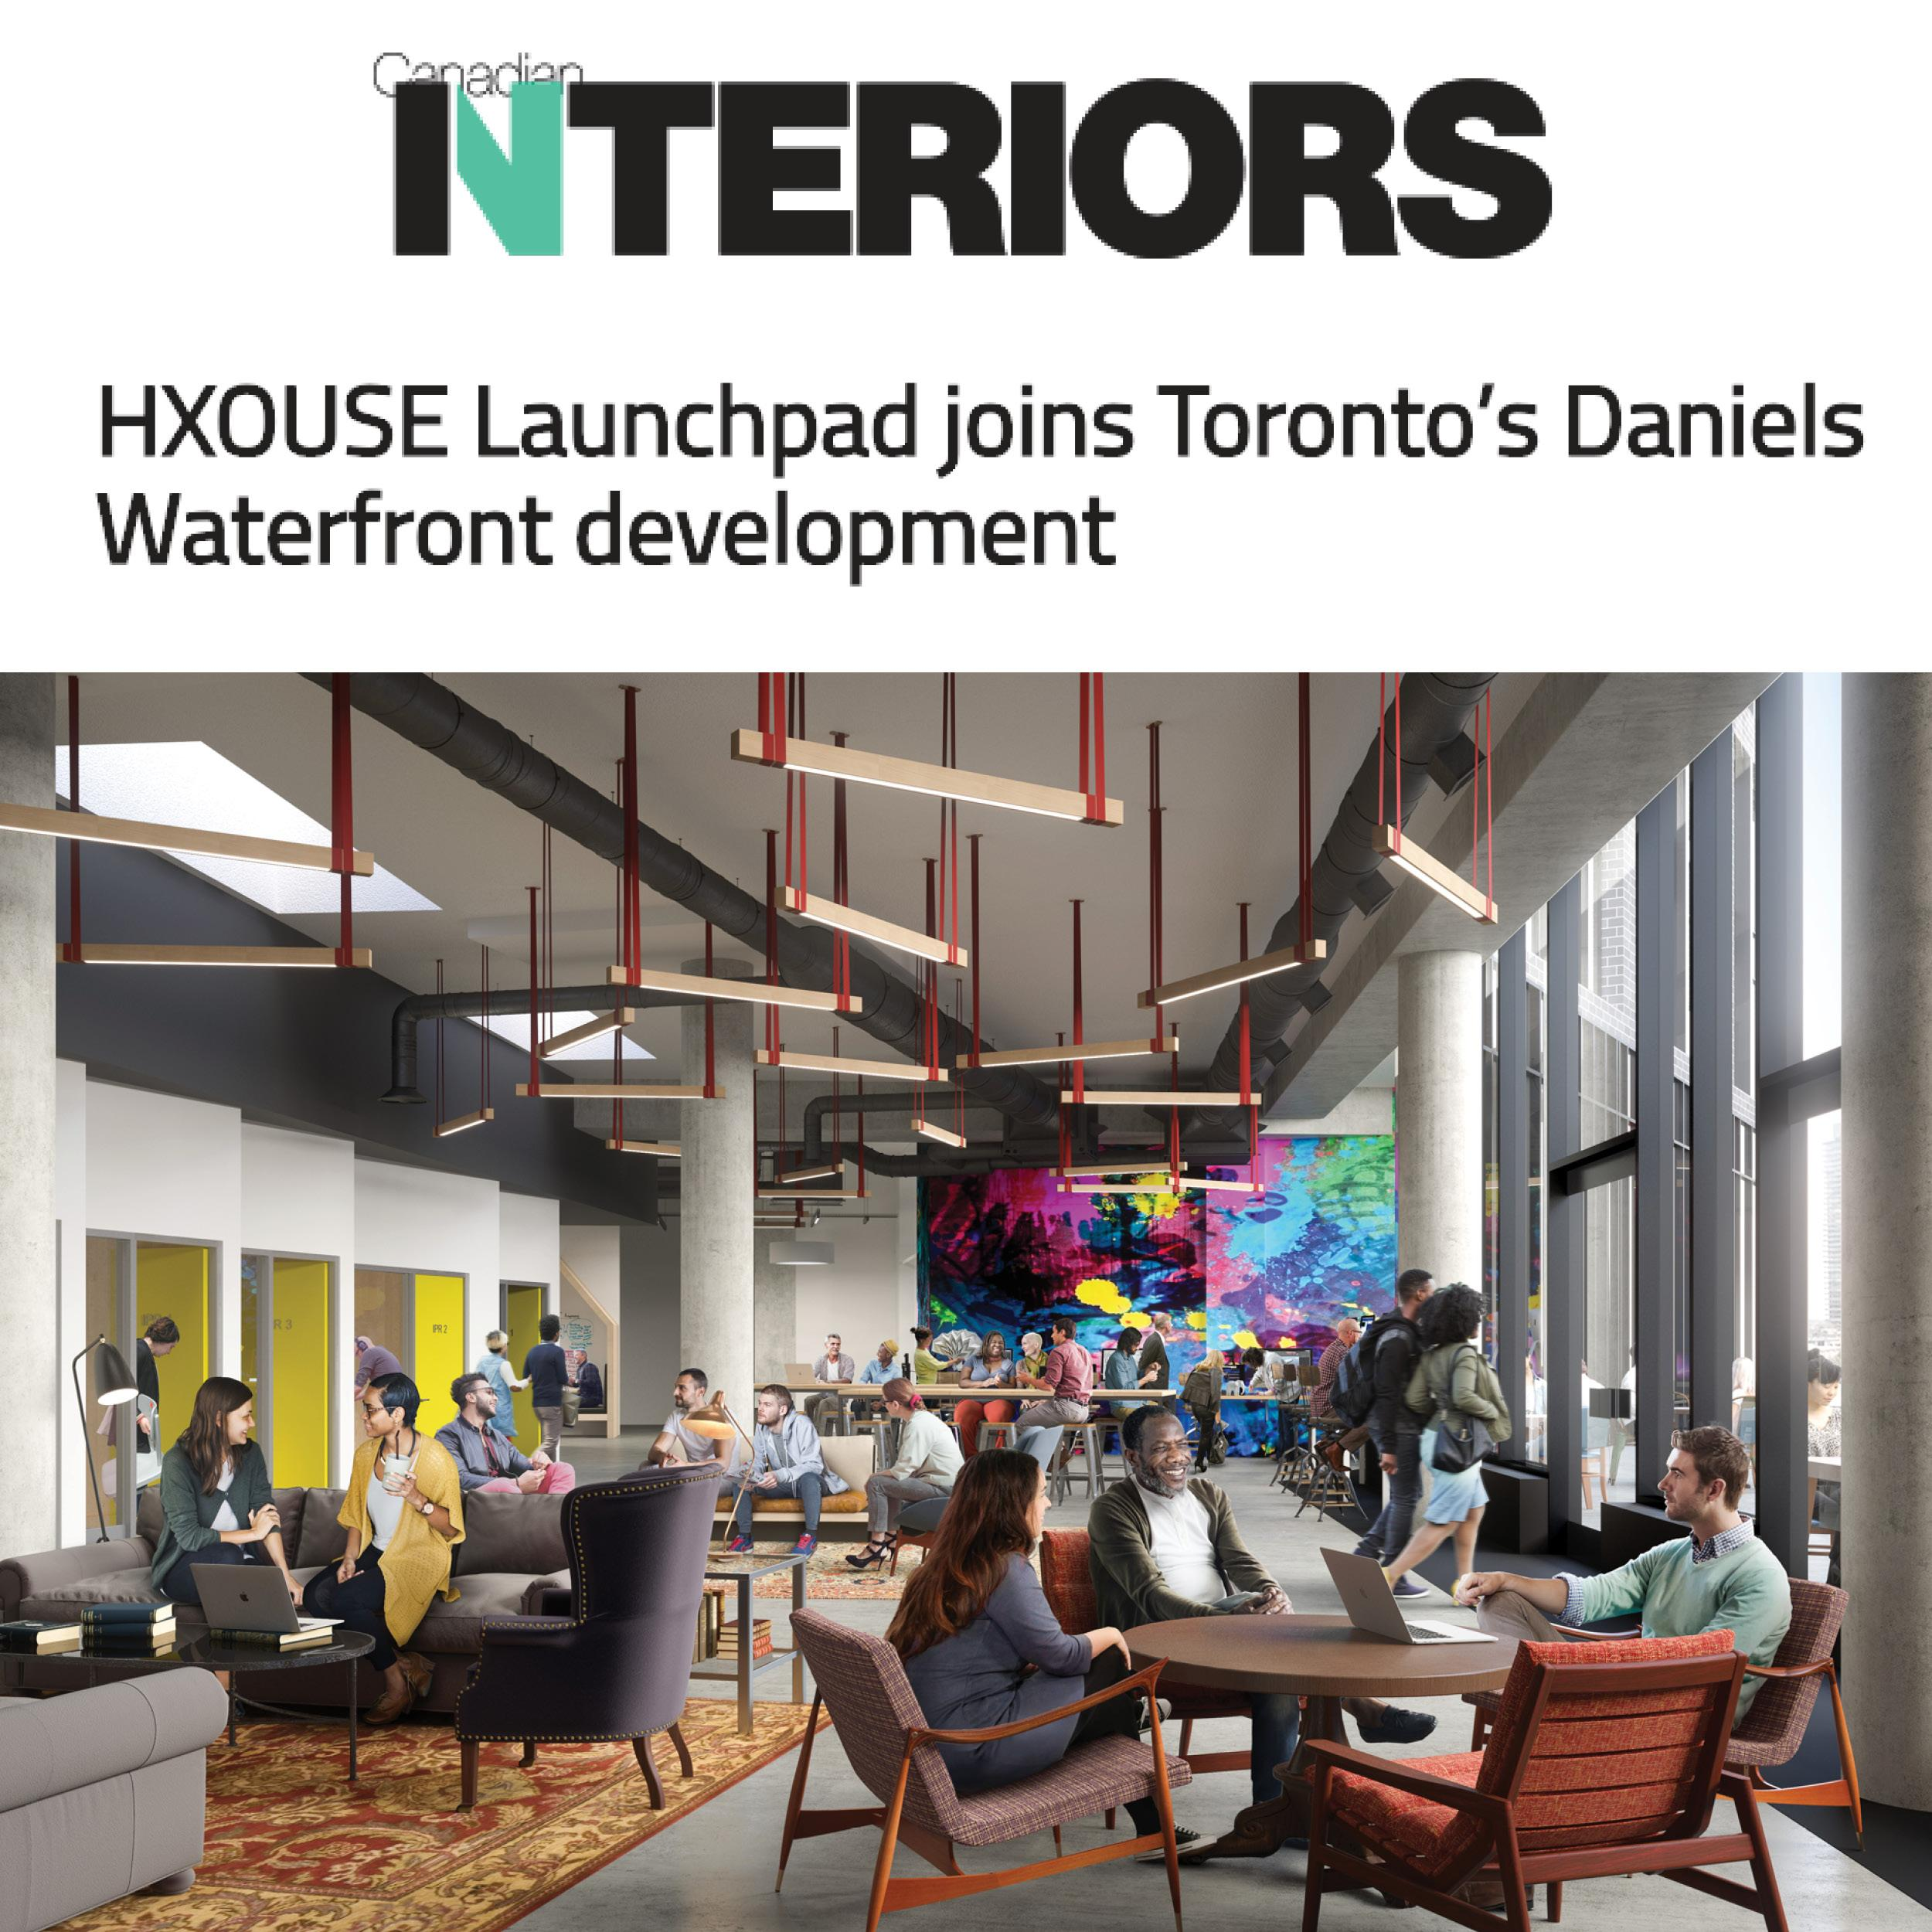 rendering of a common area inside Artscape Launchpad, Canadian Interiors logo